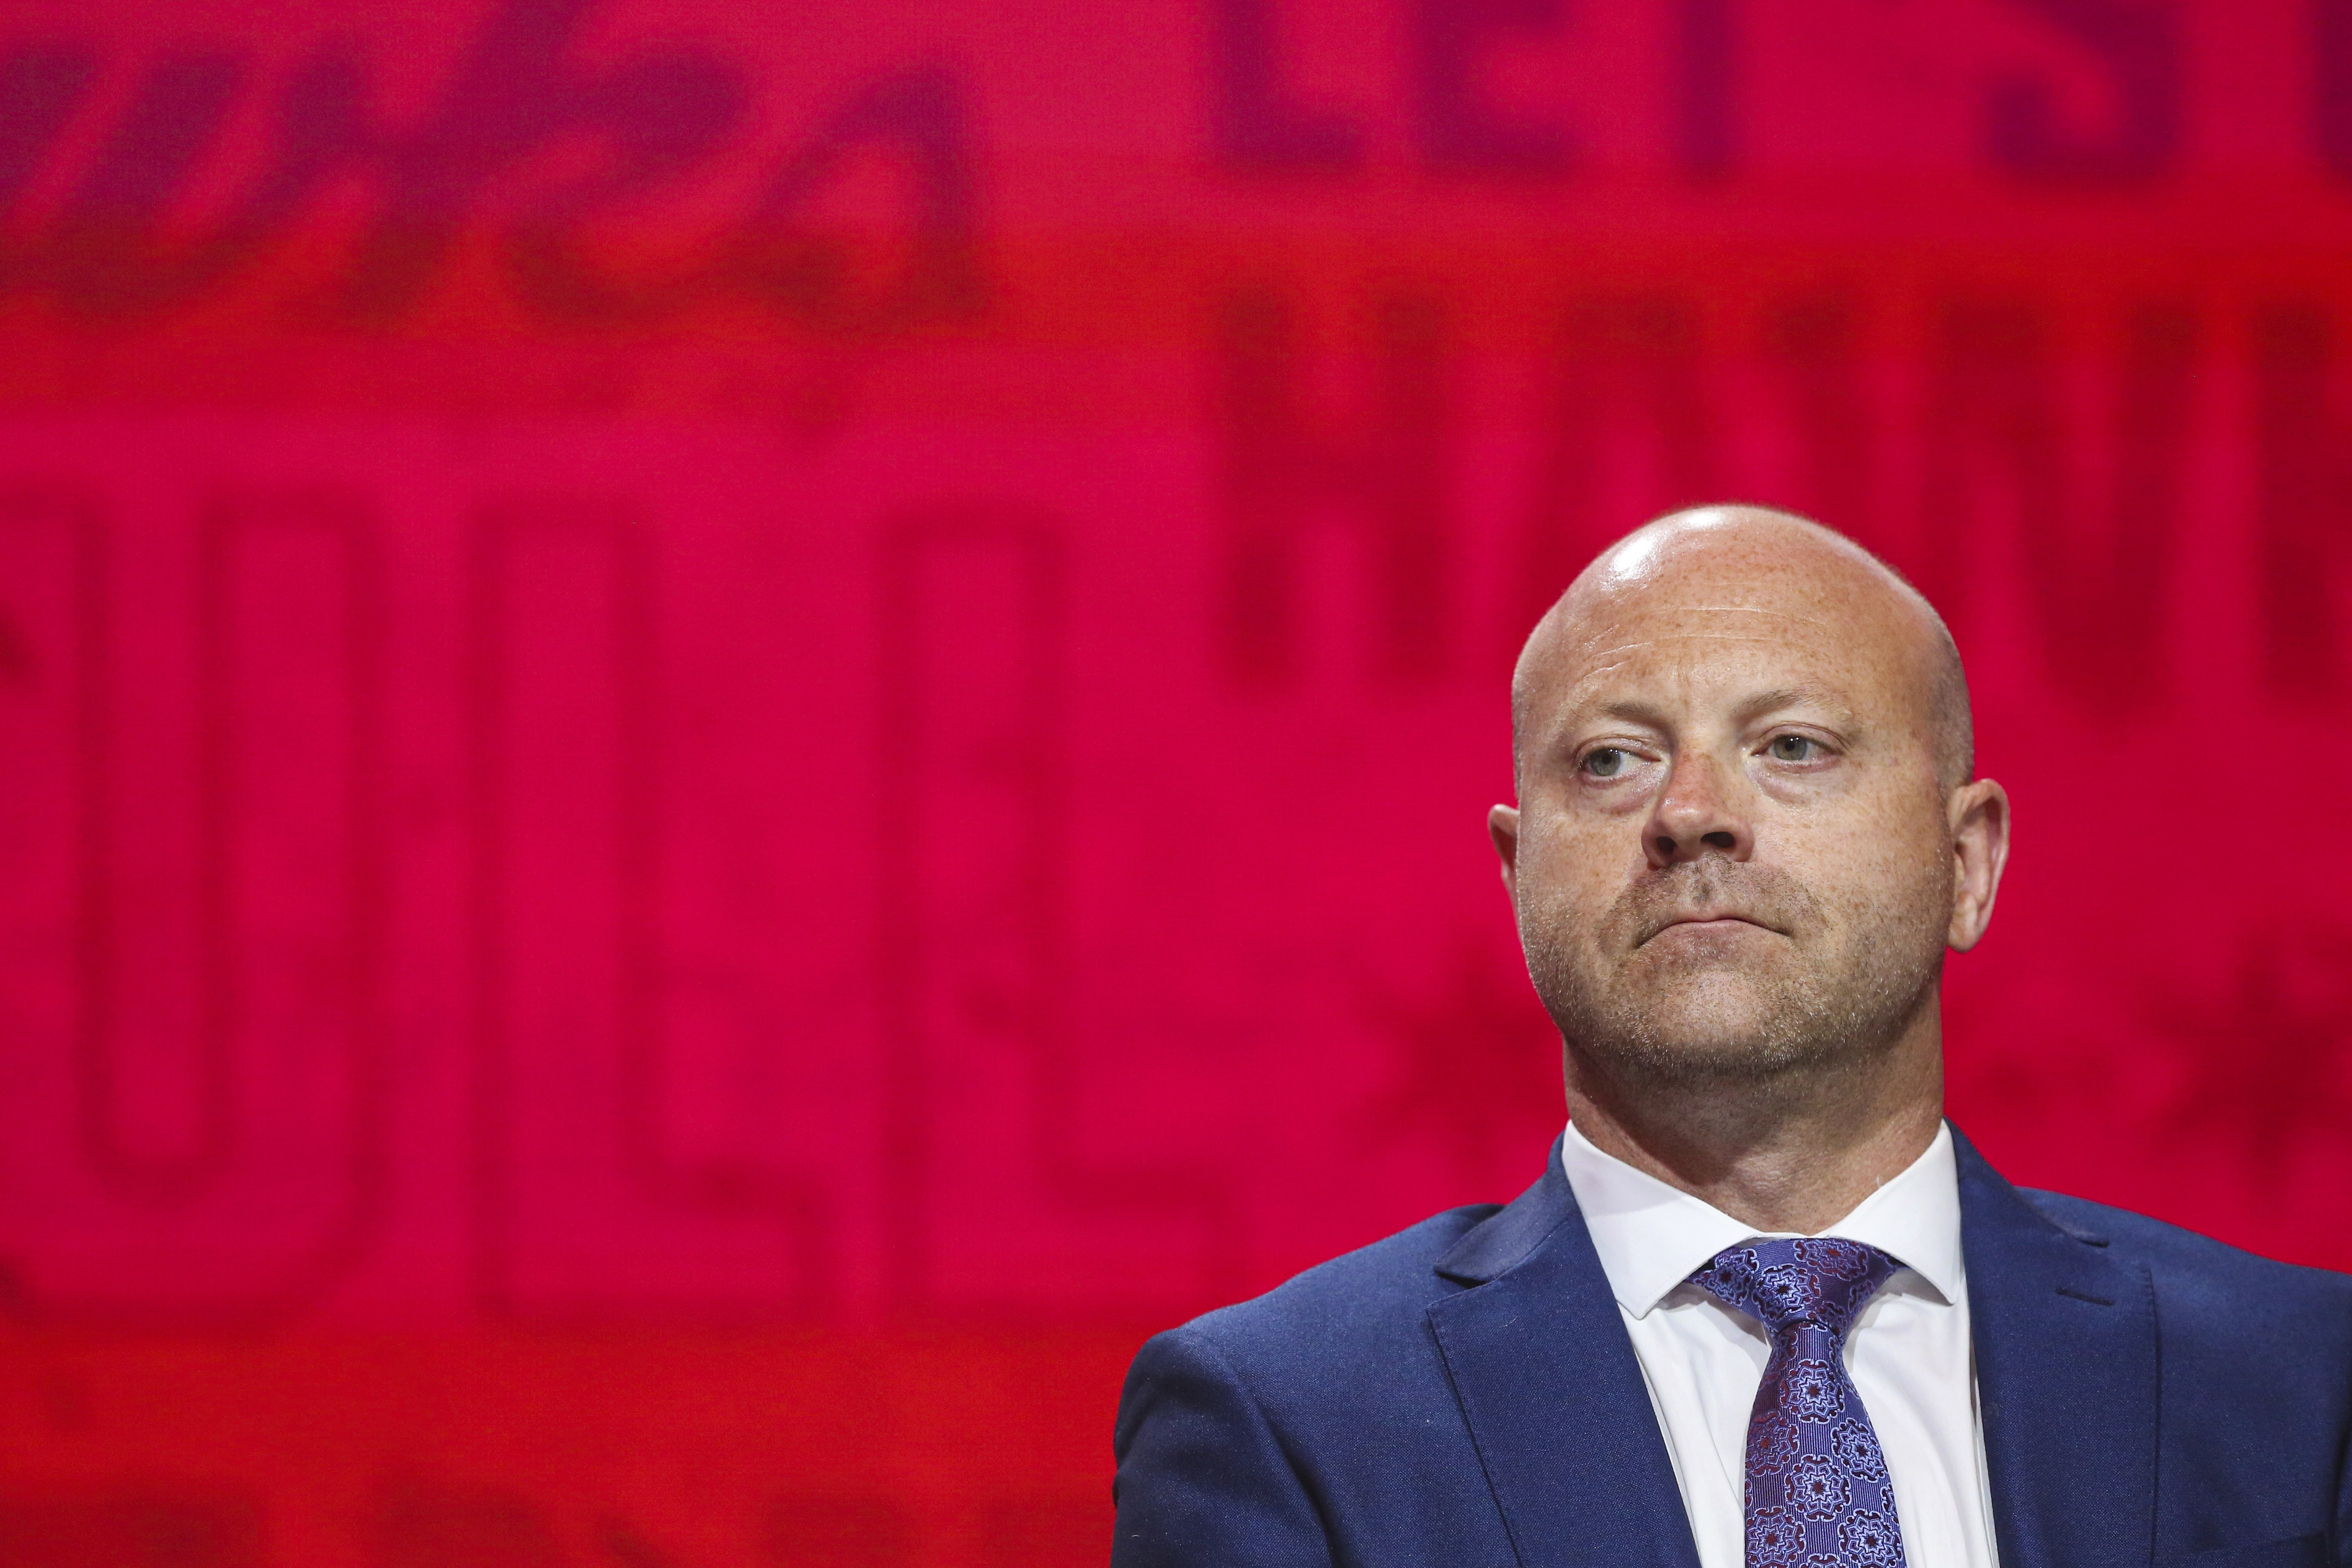 Blackhawks general manager Stan Bowman must decide again about the long-term course of the franchise soon.